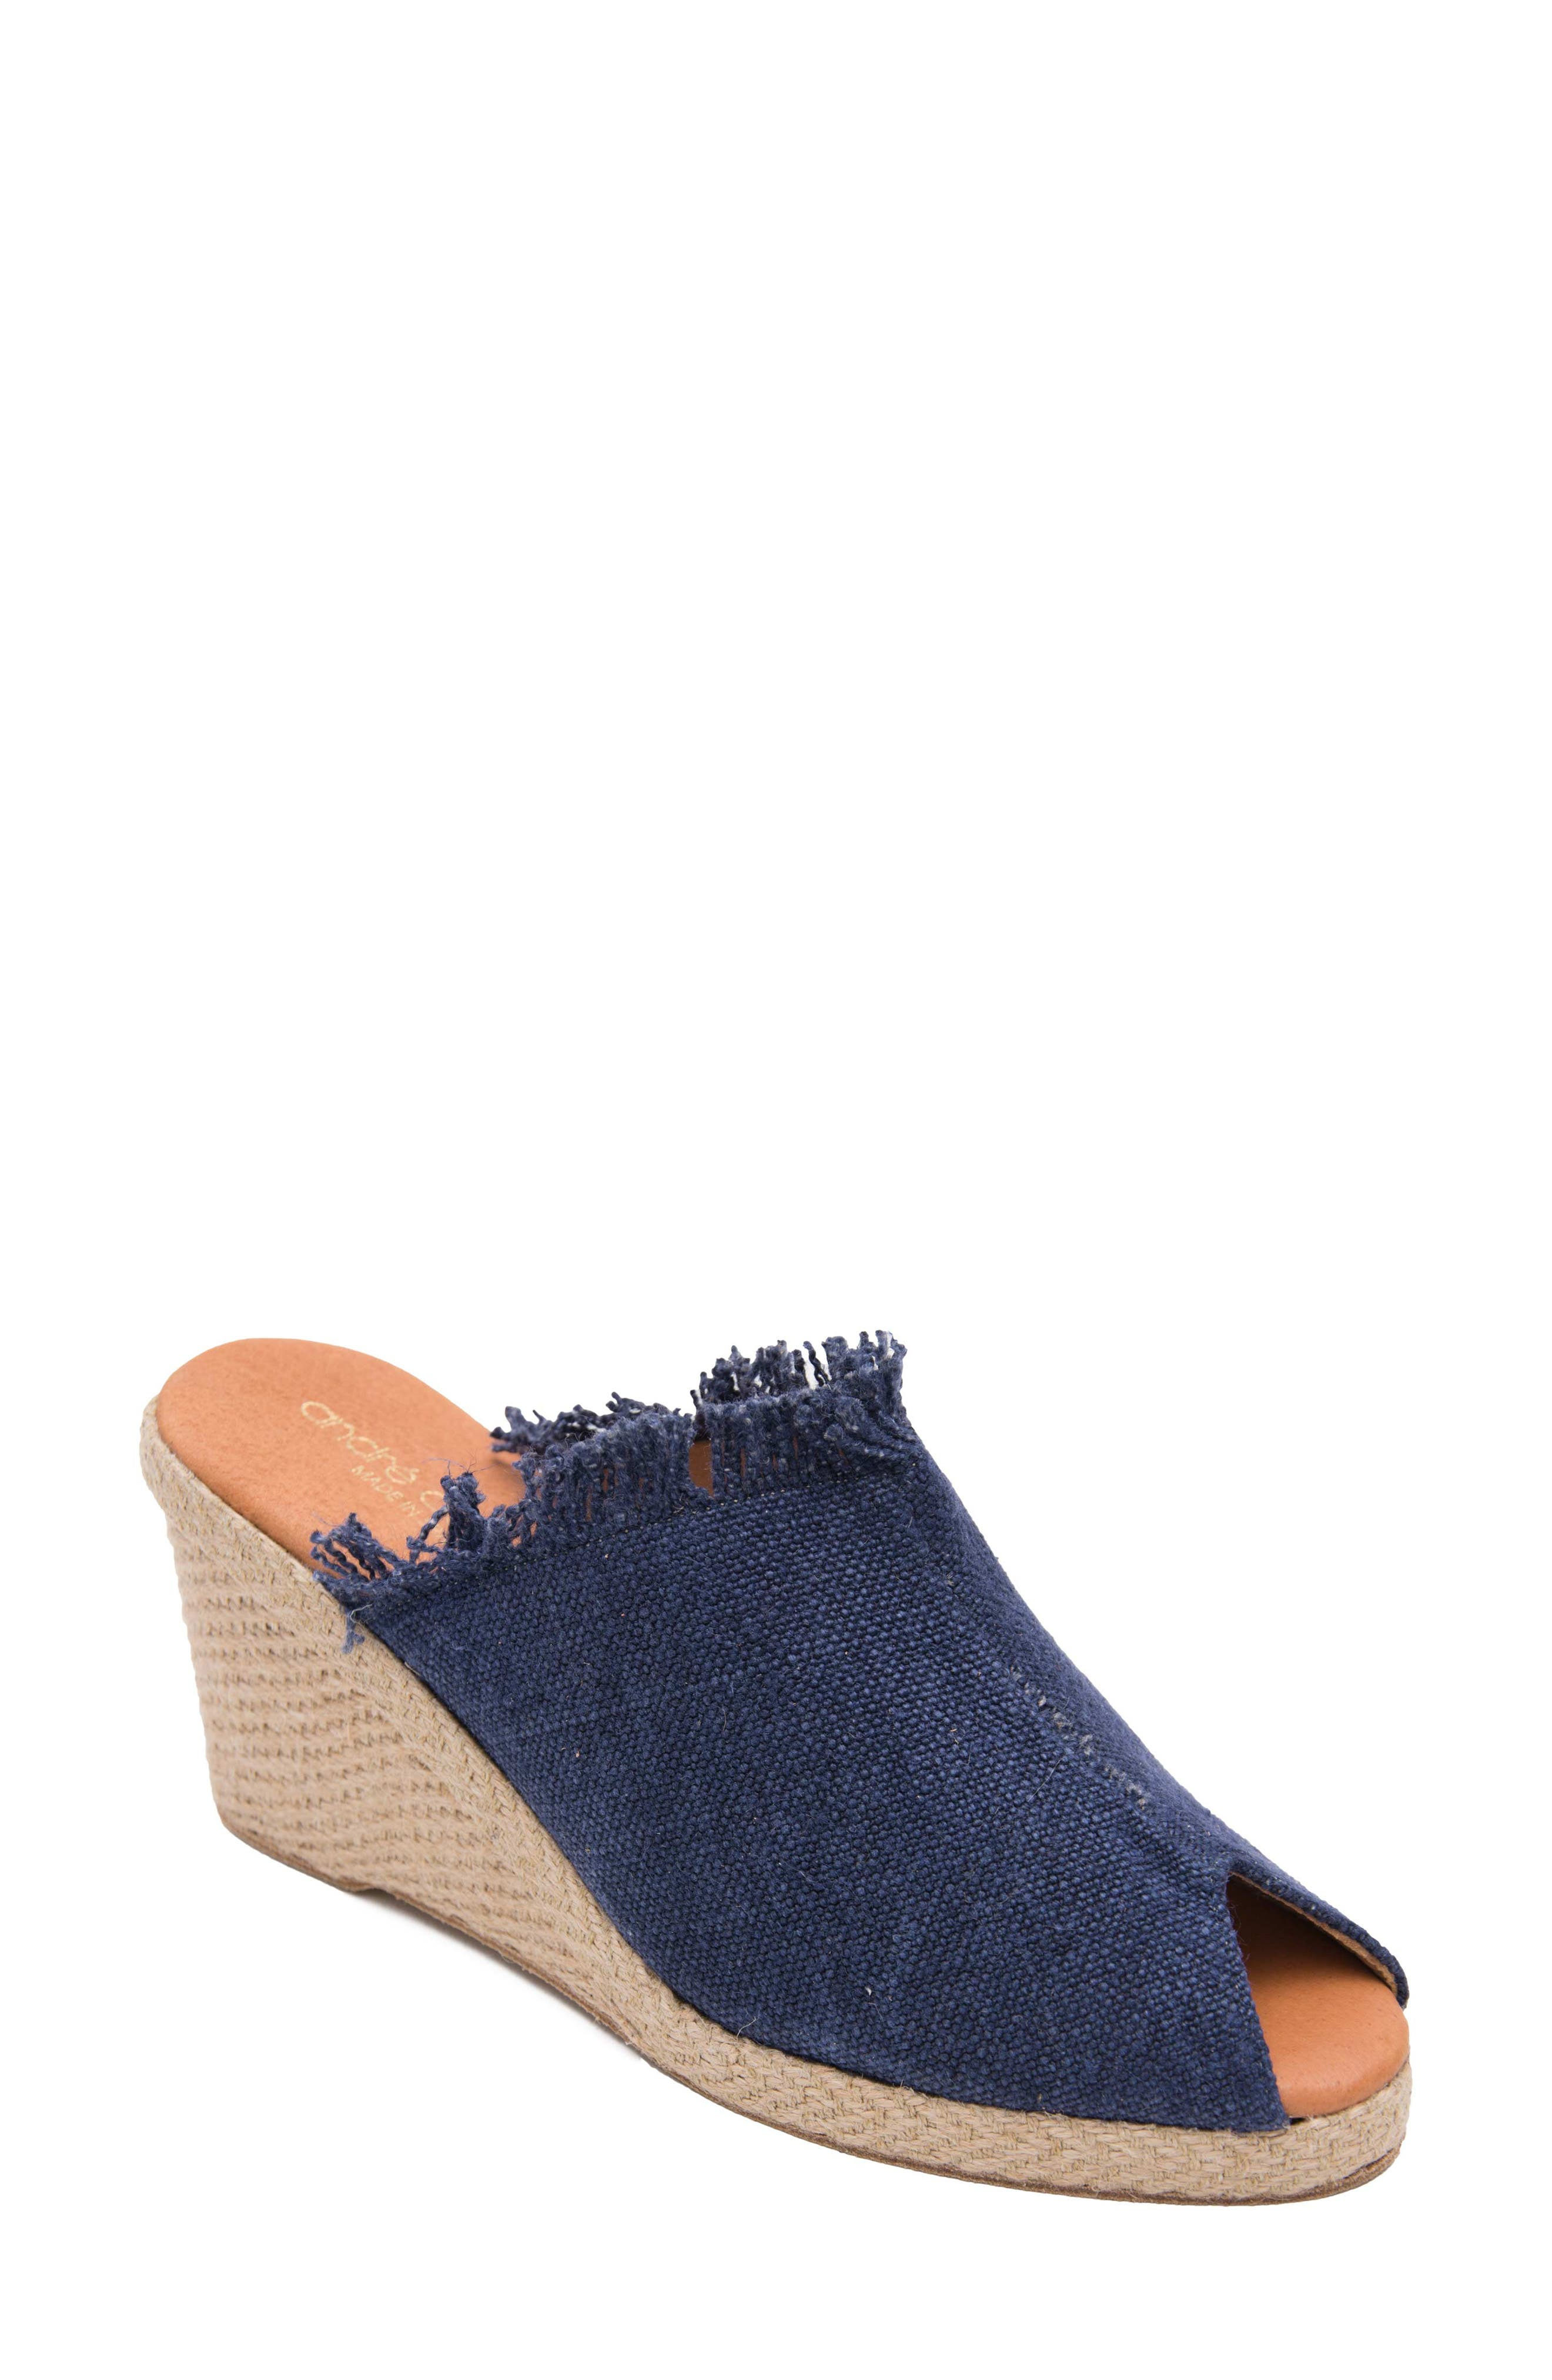 Andre Assous Popy Frayed Wedge Mule, Blue